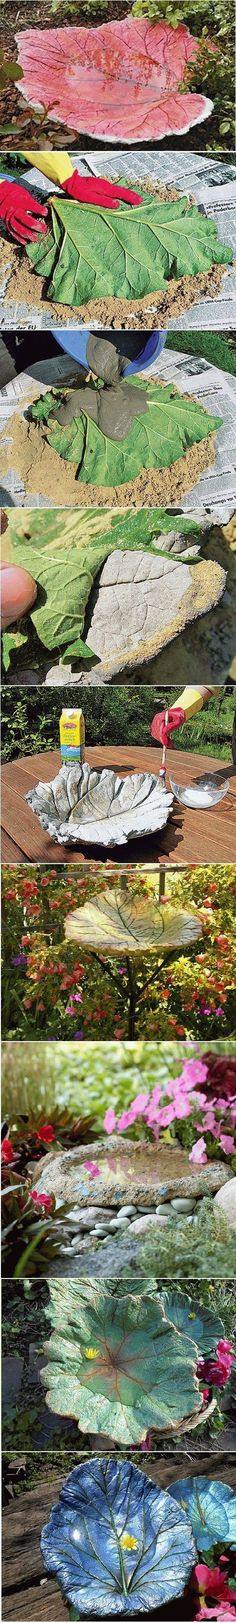 How To Make A Stand Cast Birdbath in Leaf Shape(Diy Garden Projects) Garden Crafts, Garden Projects, Diy Projects, Concrete Leaves, Deco Floral, Outdoor Projects, Dream Garden, Yard Art, Garden Inspiration